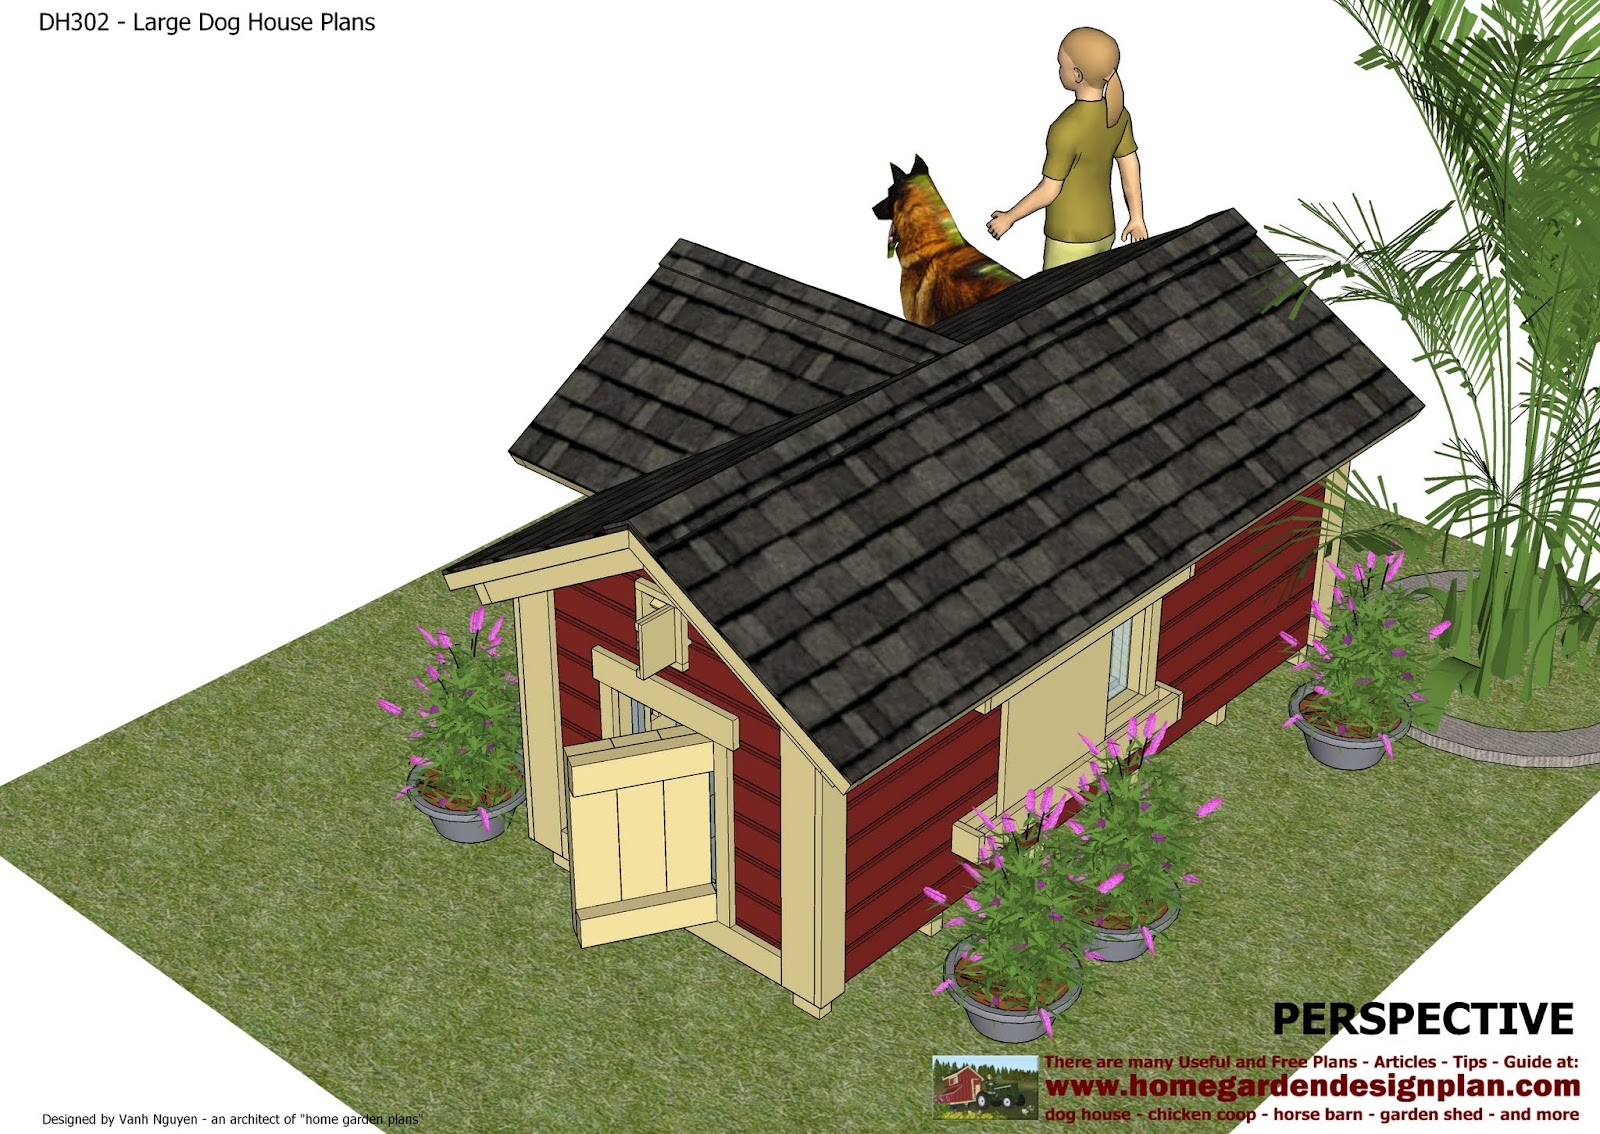 Insulated dog house plans for large dogs free - photo#14